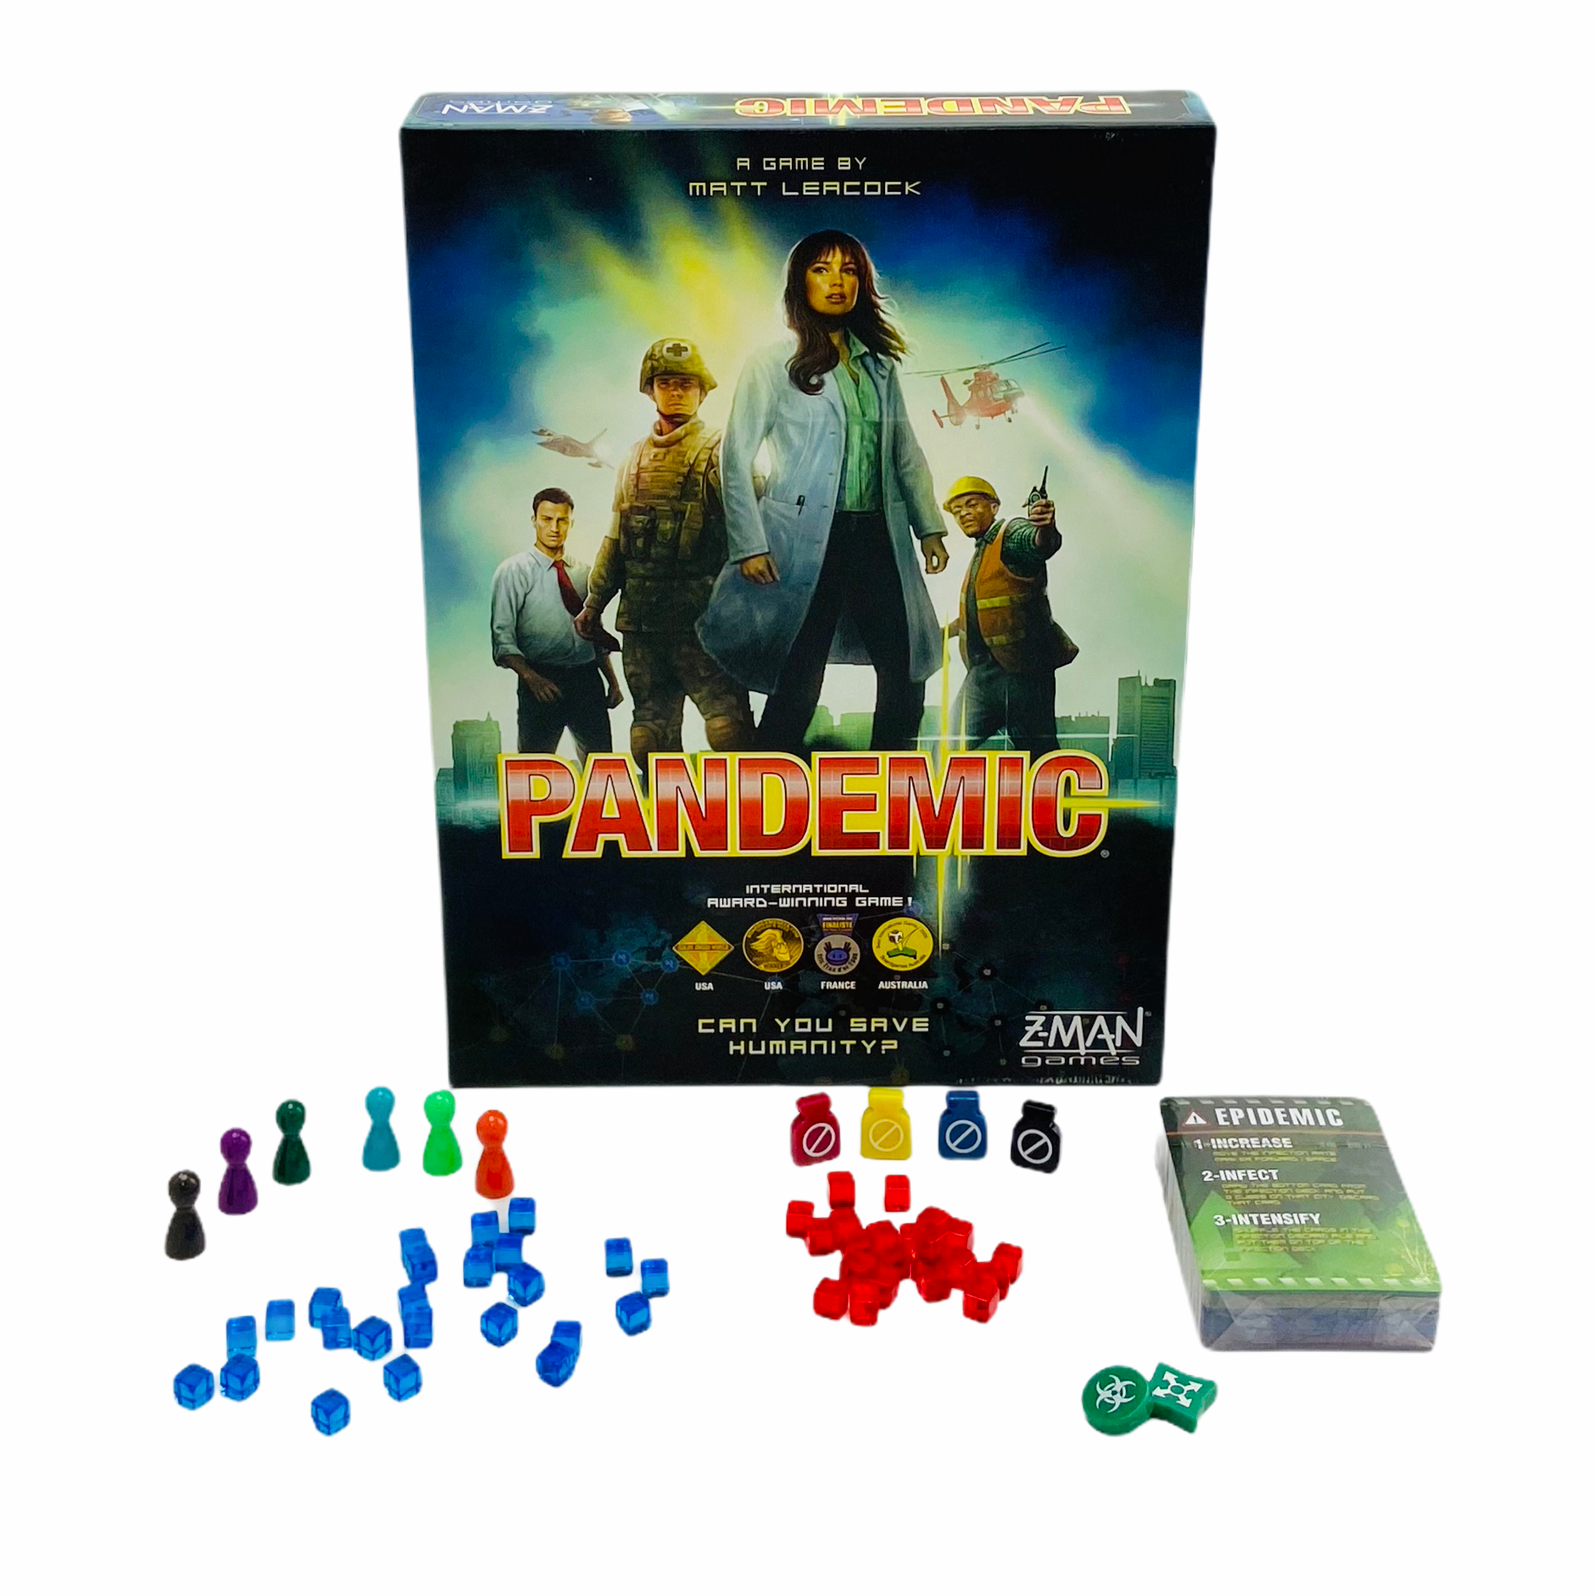 Pandemic game placed together with game pieces and cards on white background